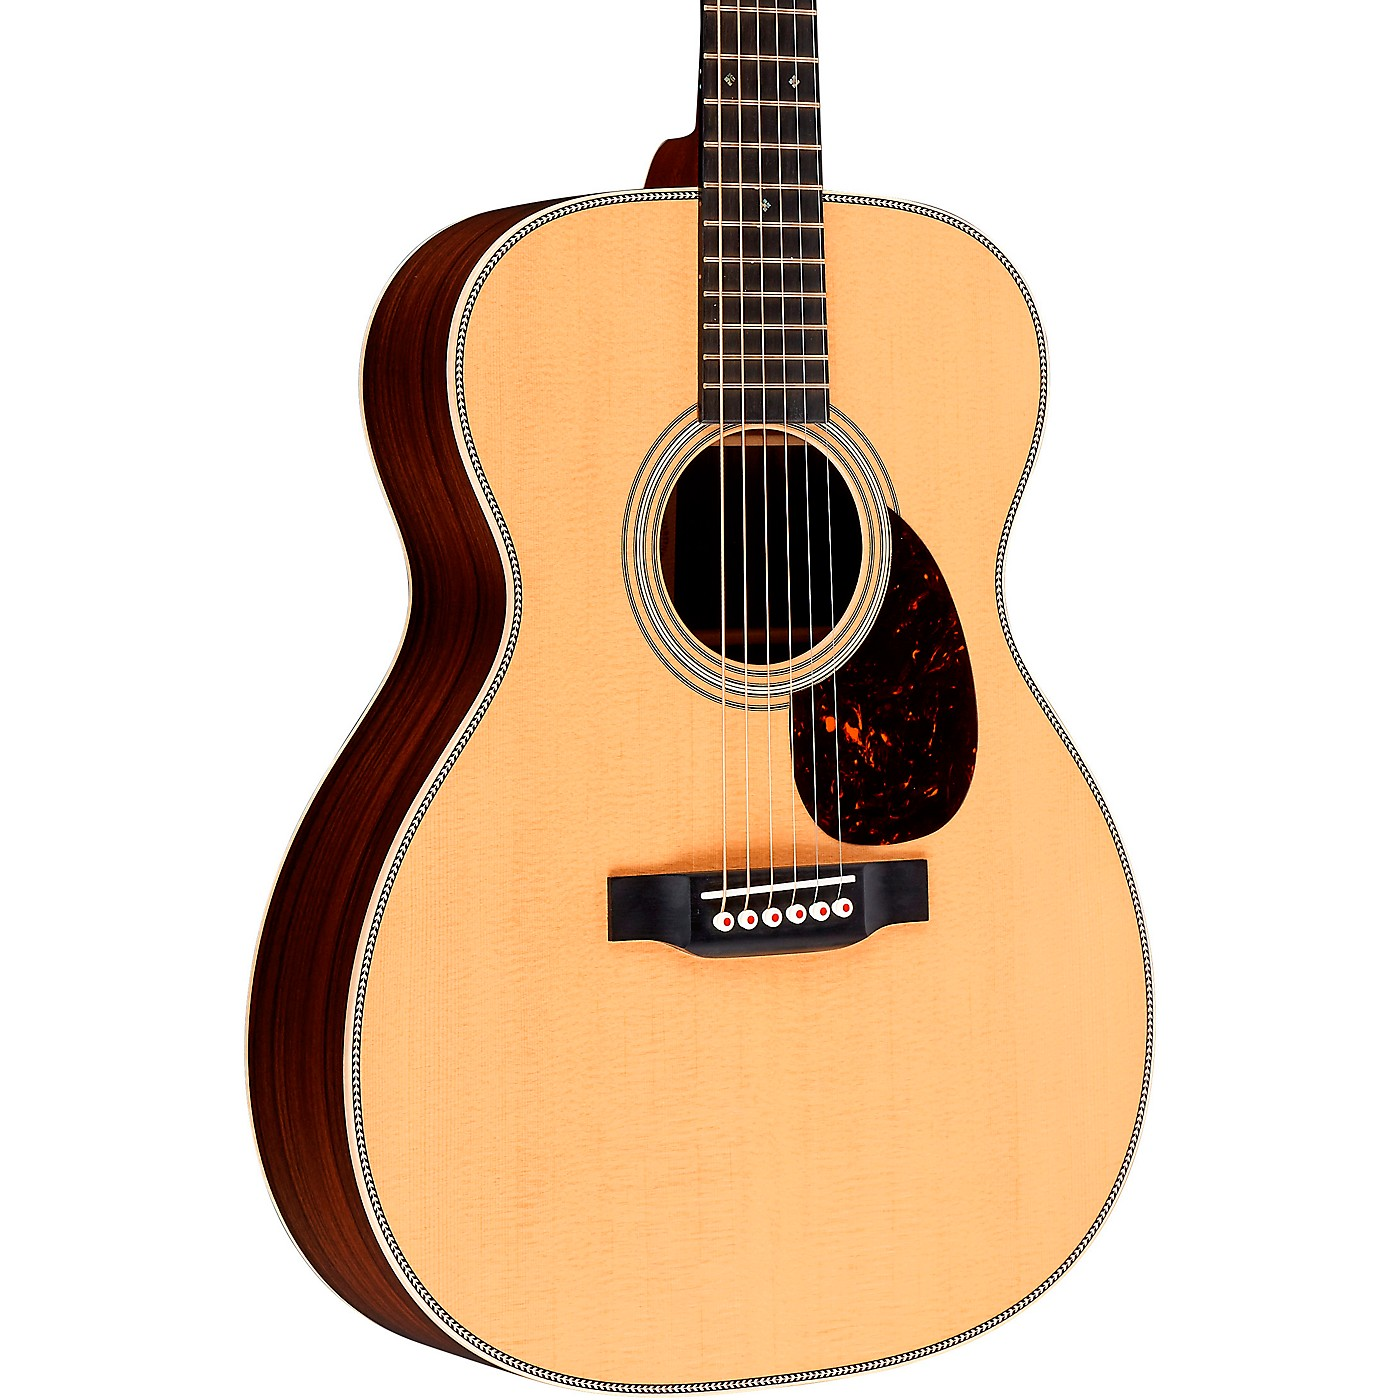 Martin OM-28 Modern Deluxe Orchestra Acoustic Guitar thumbnail